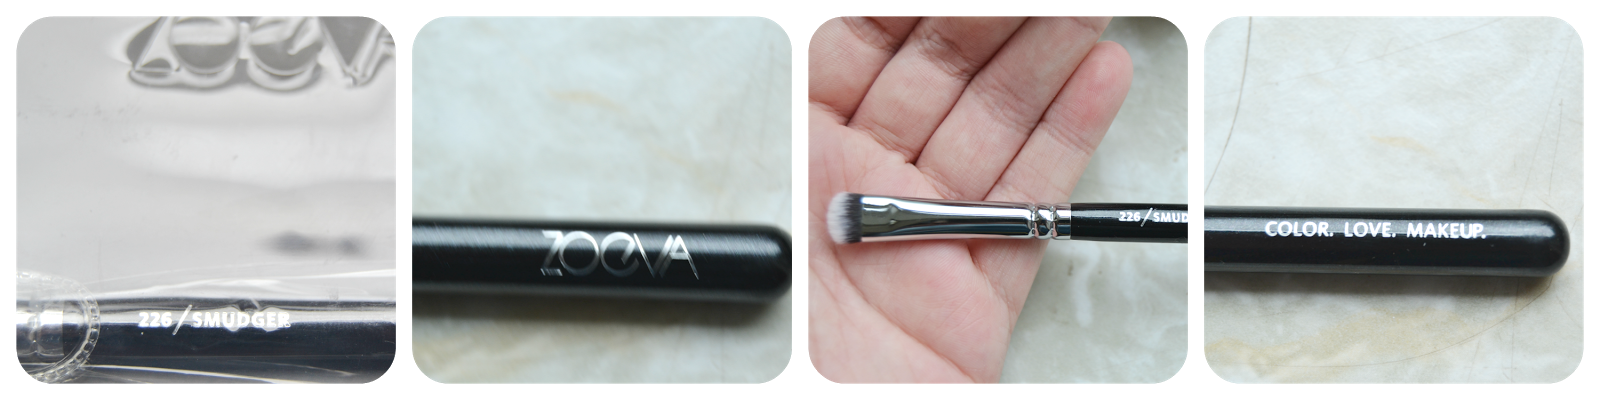 zoeva brush tool smudged